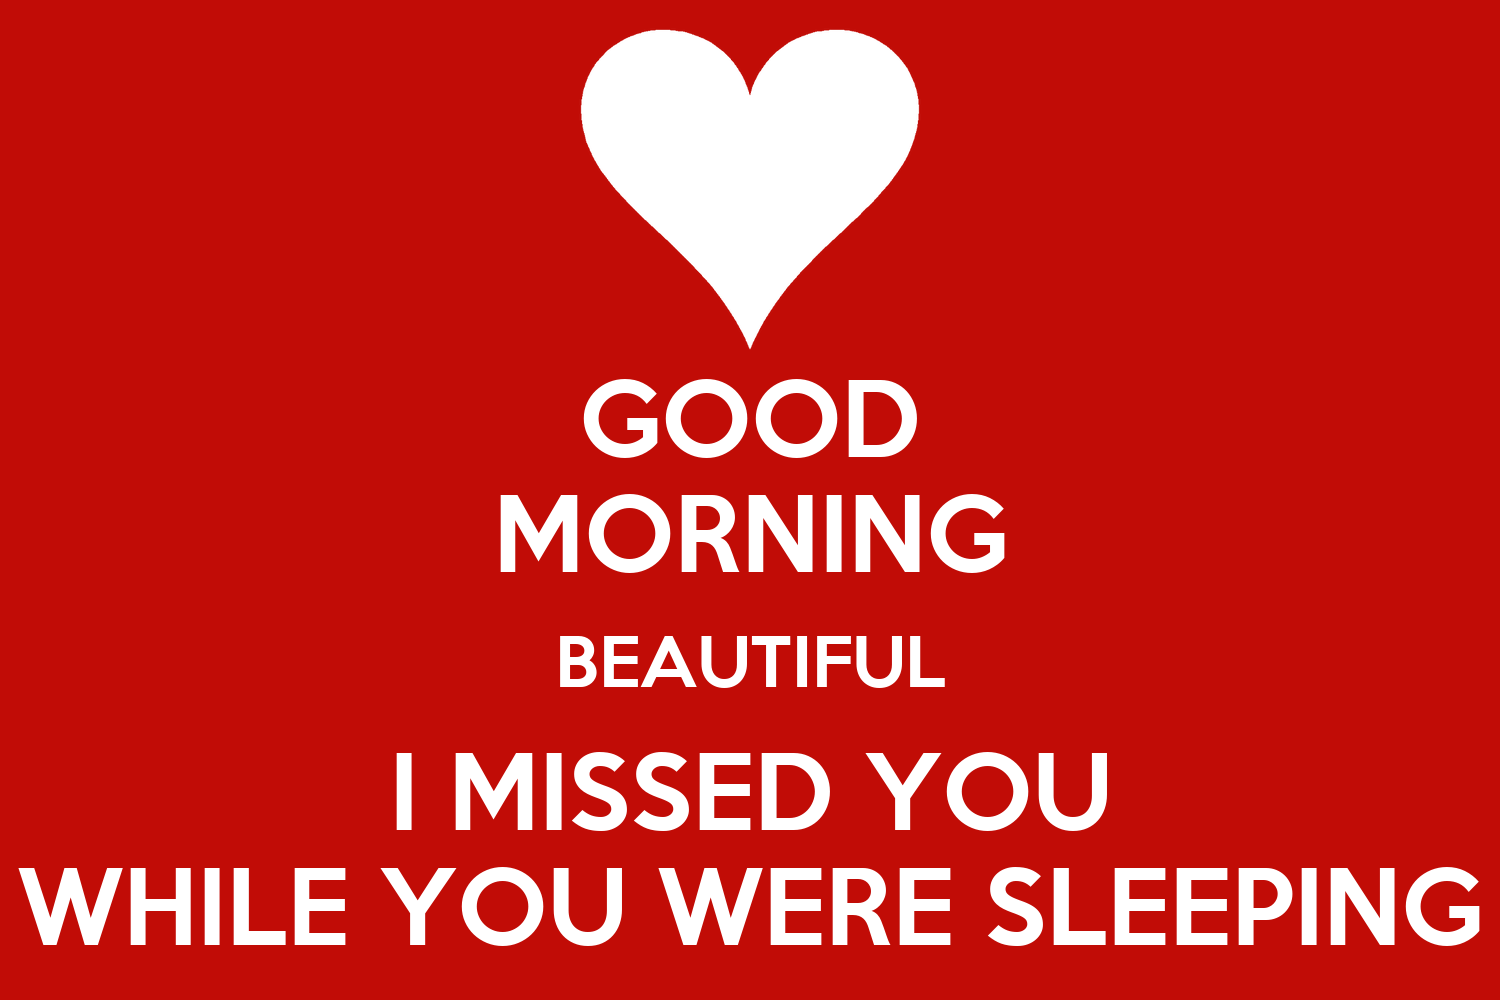 Good Morning You Re Beautiful Meme : Good morning beautiful i missed you while were